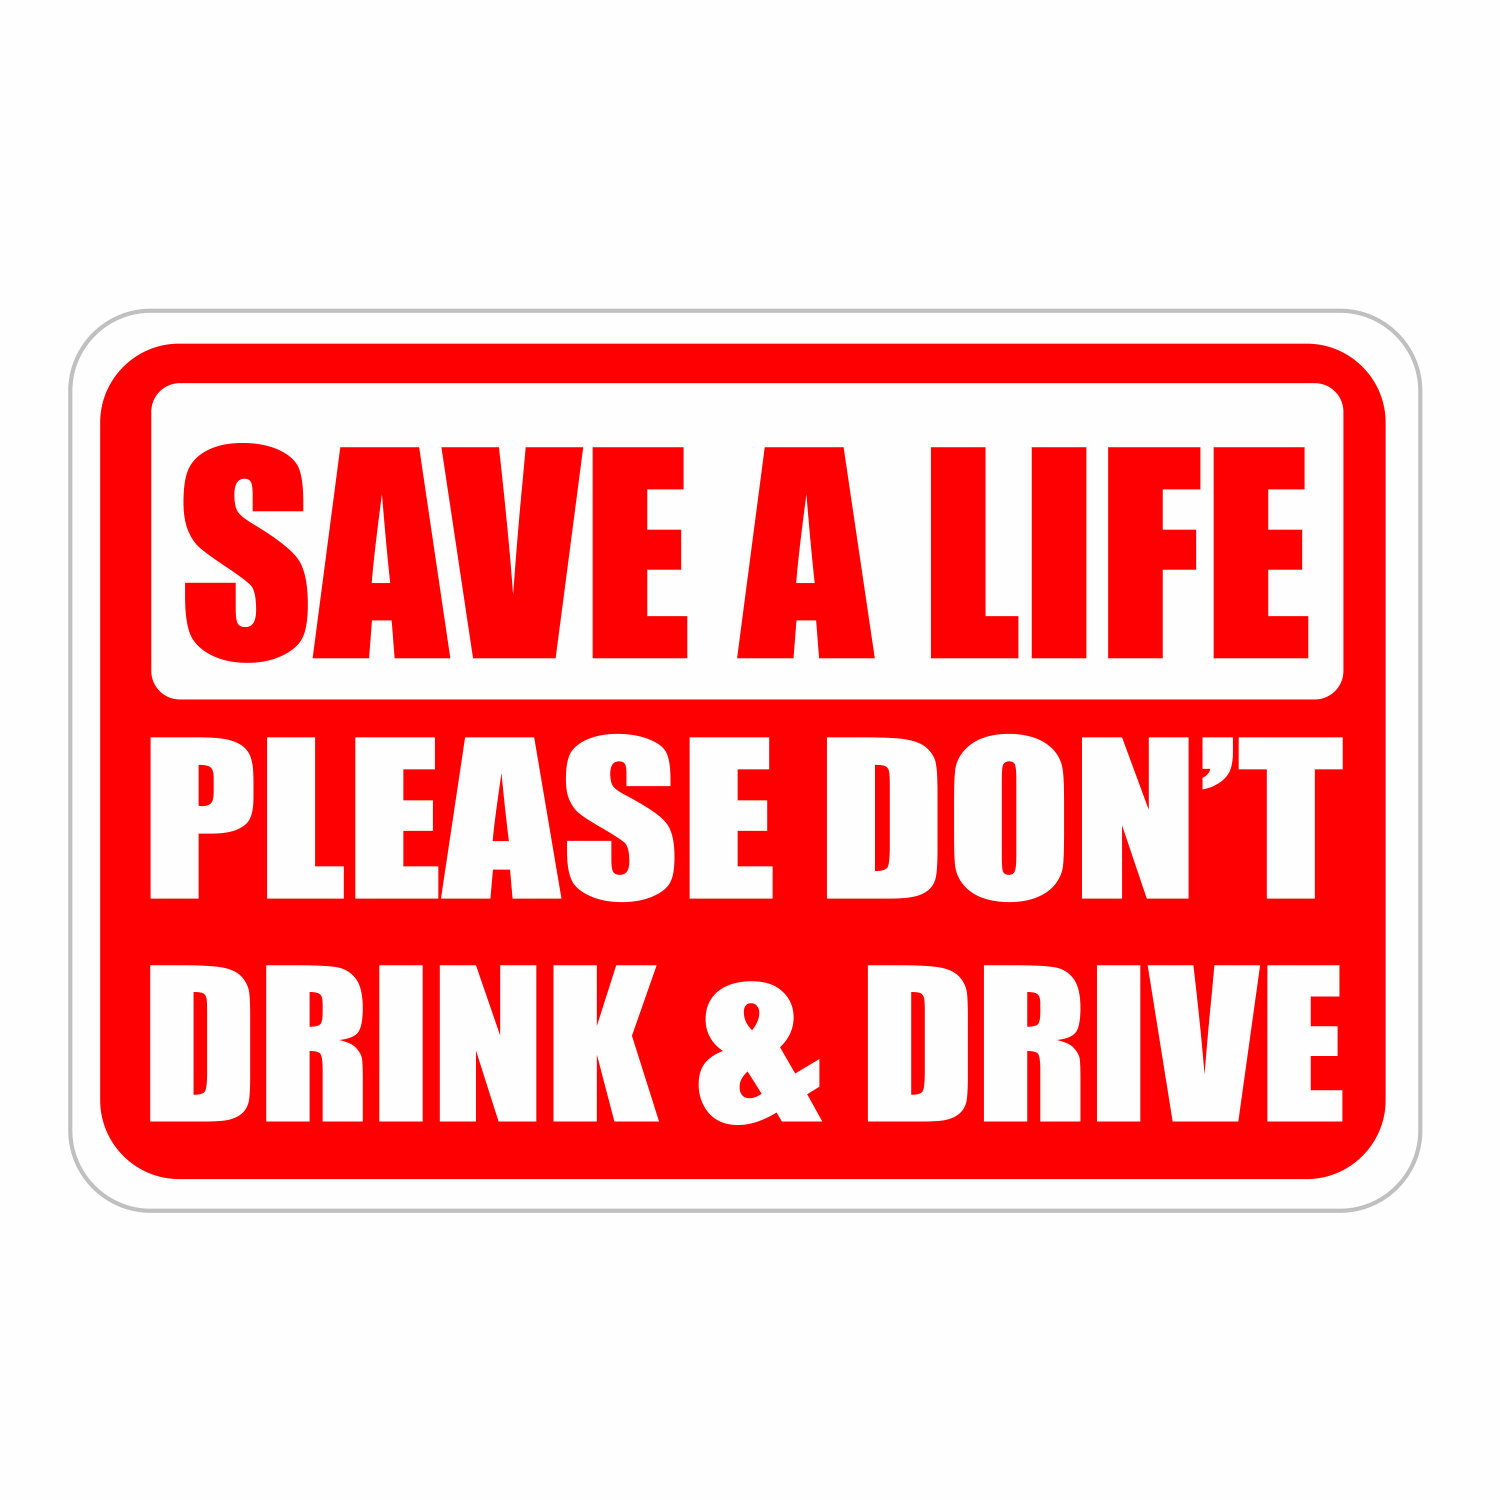 Car Driving Signs >> Safe holidays Don't Drink and Drive